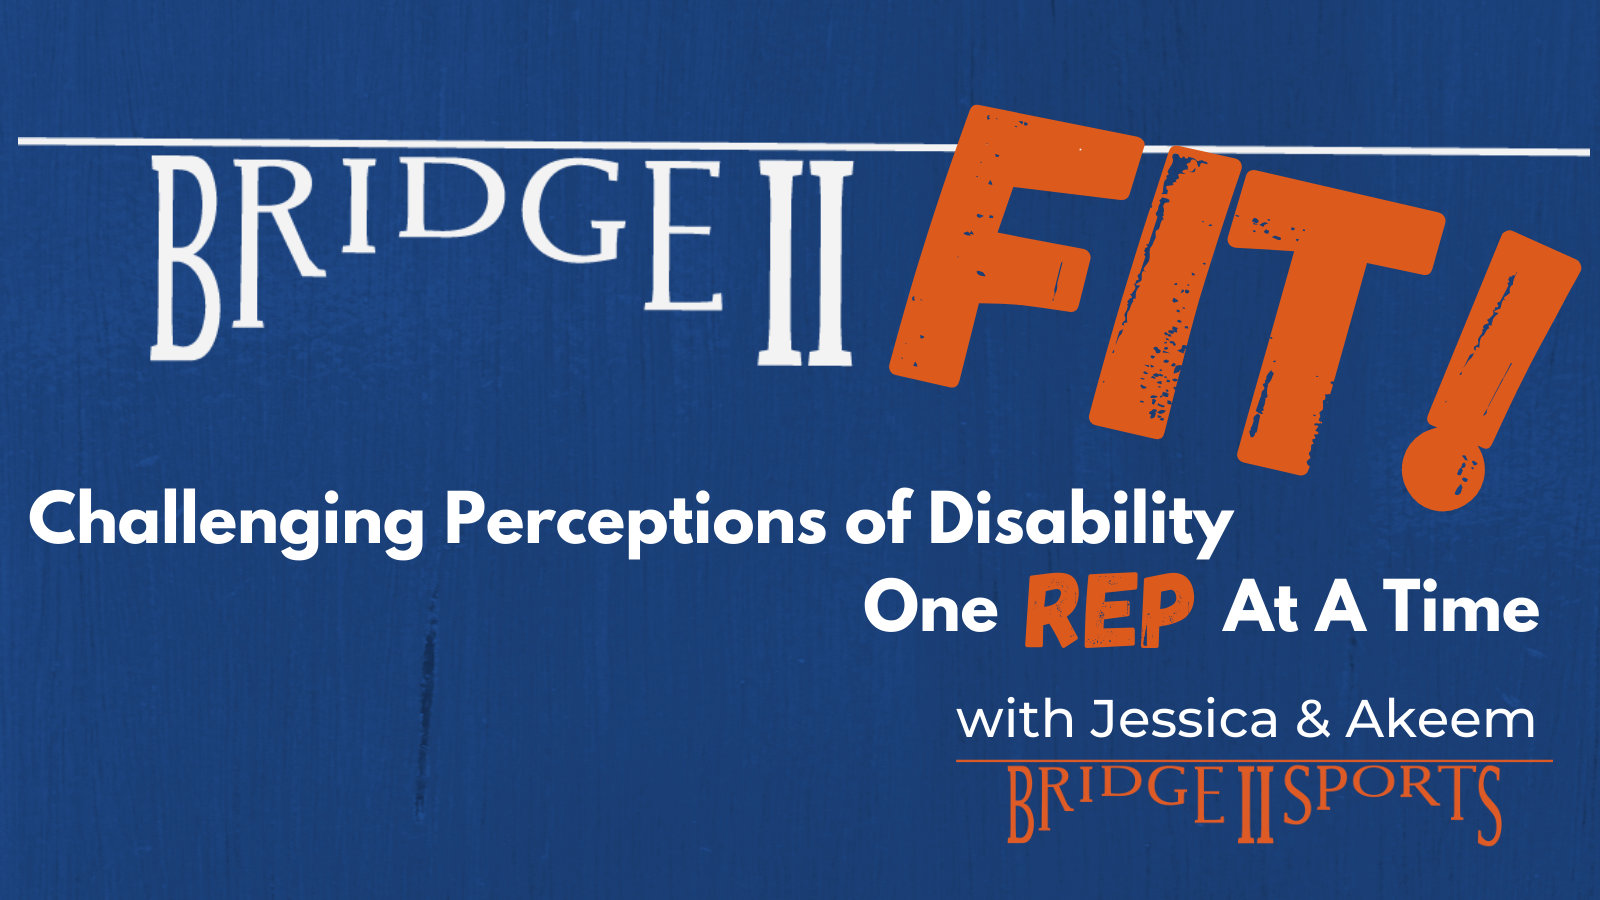 Bridge II Fit Challenging Perceptions of Disability One Rep at a Time with Jessica and Akeem